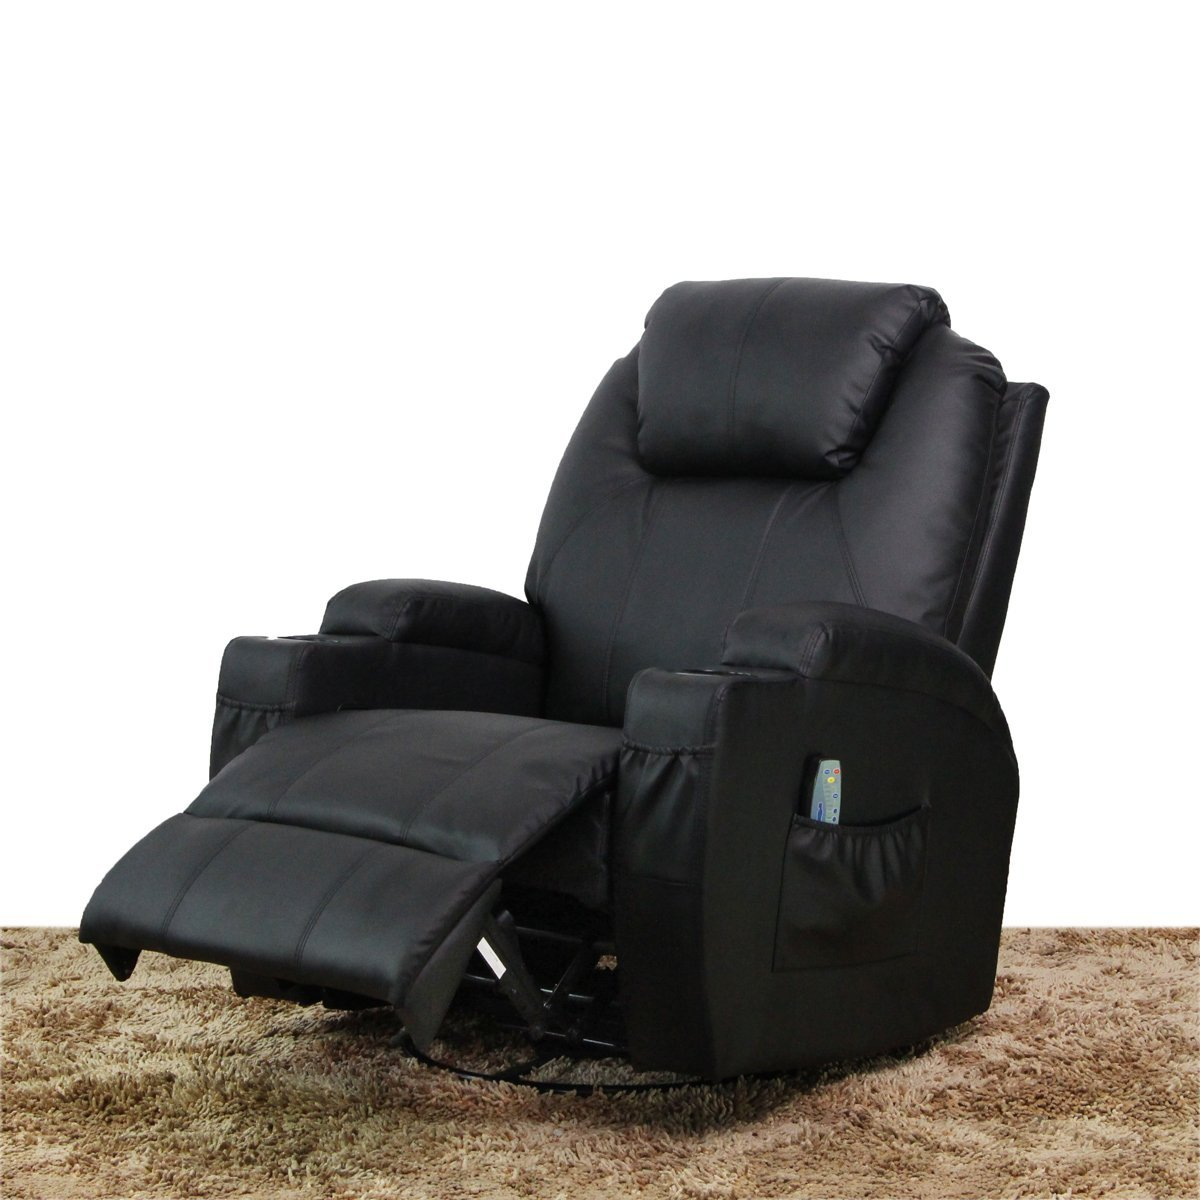 Massage recliner chair heated pu leather ergonomic lounge for Less expensive furniture